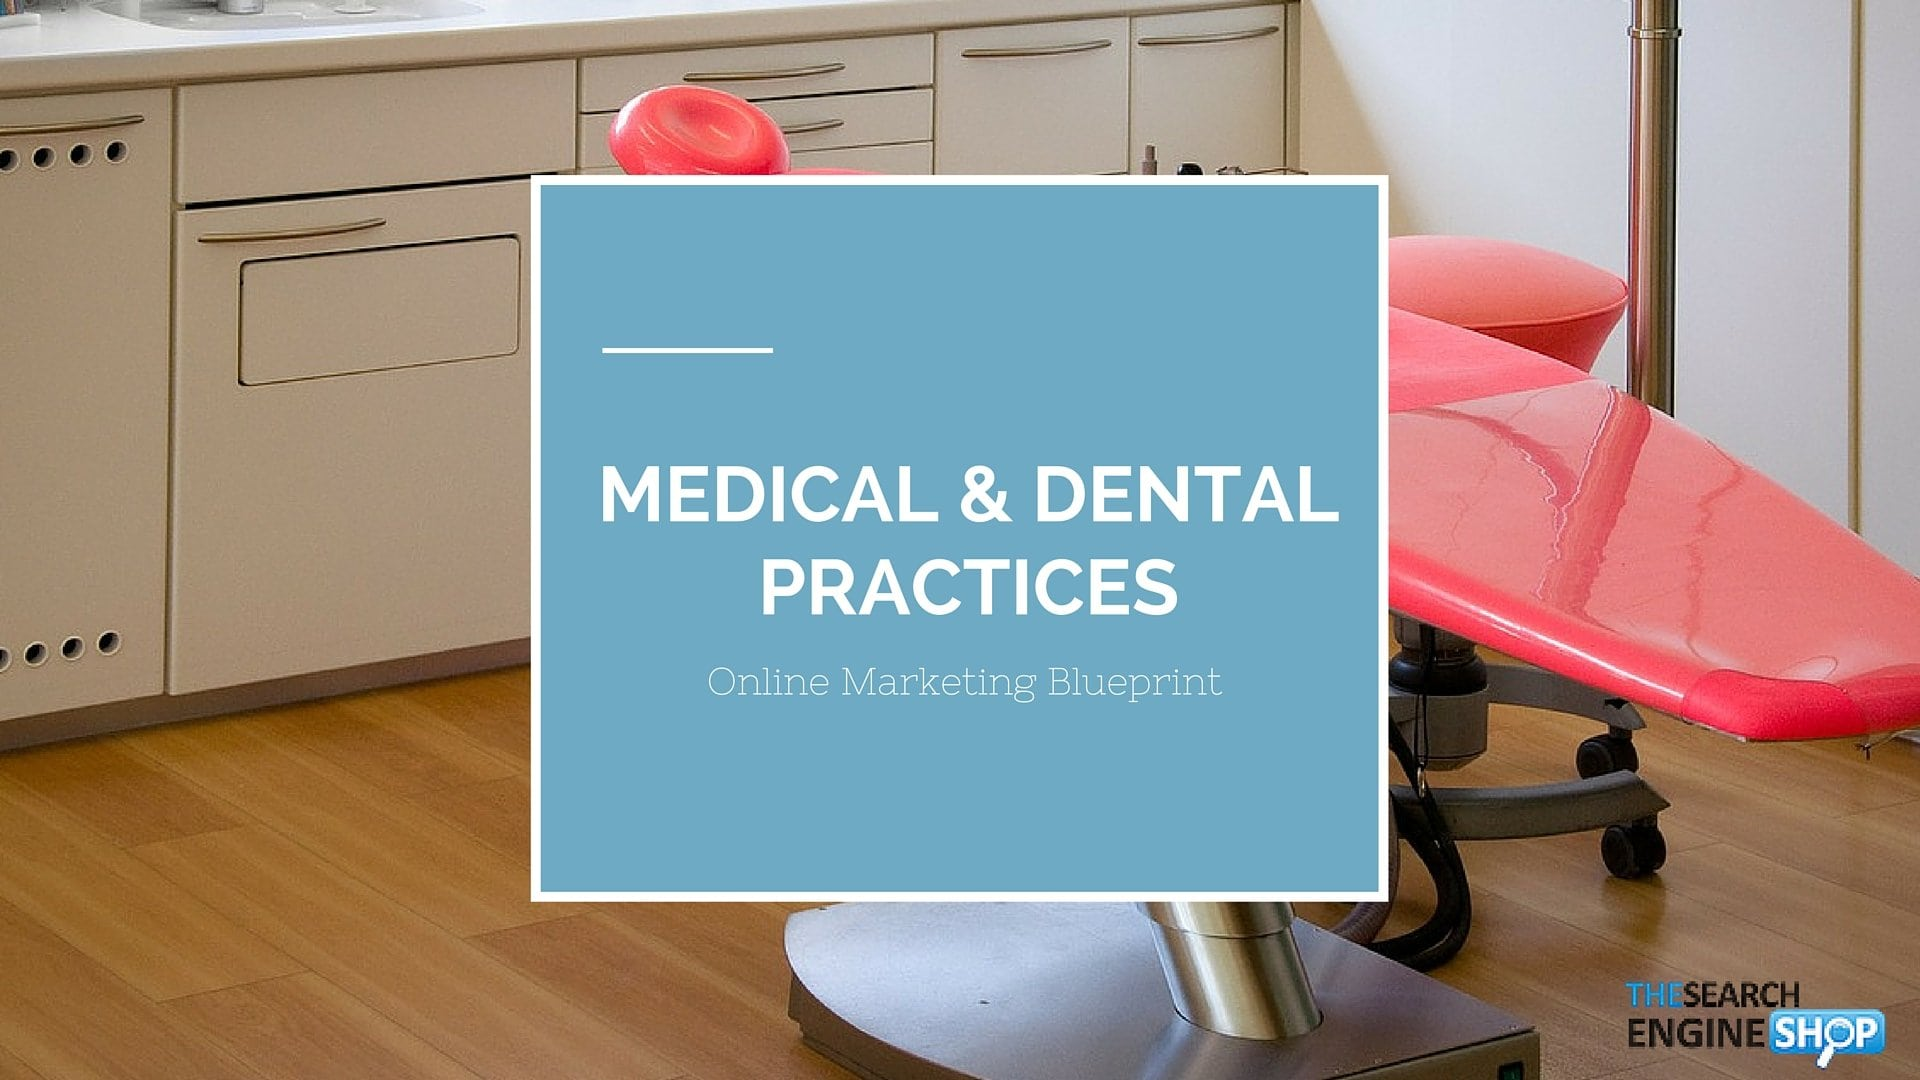 Online Marketing Strategy for Medical and Dental Practices 2 2020